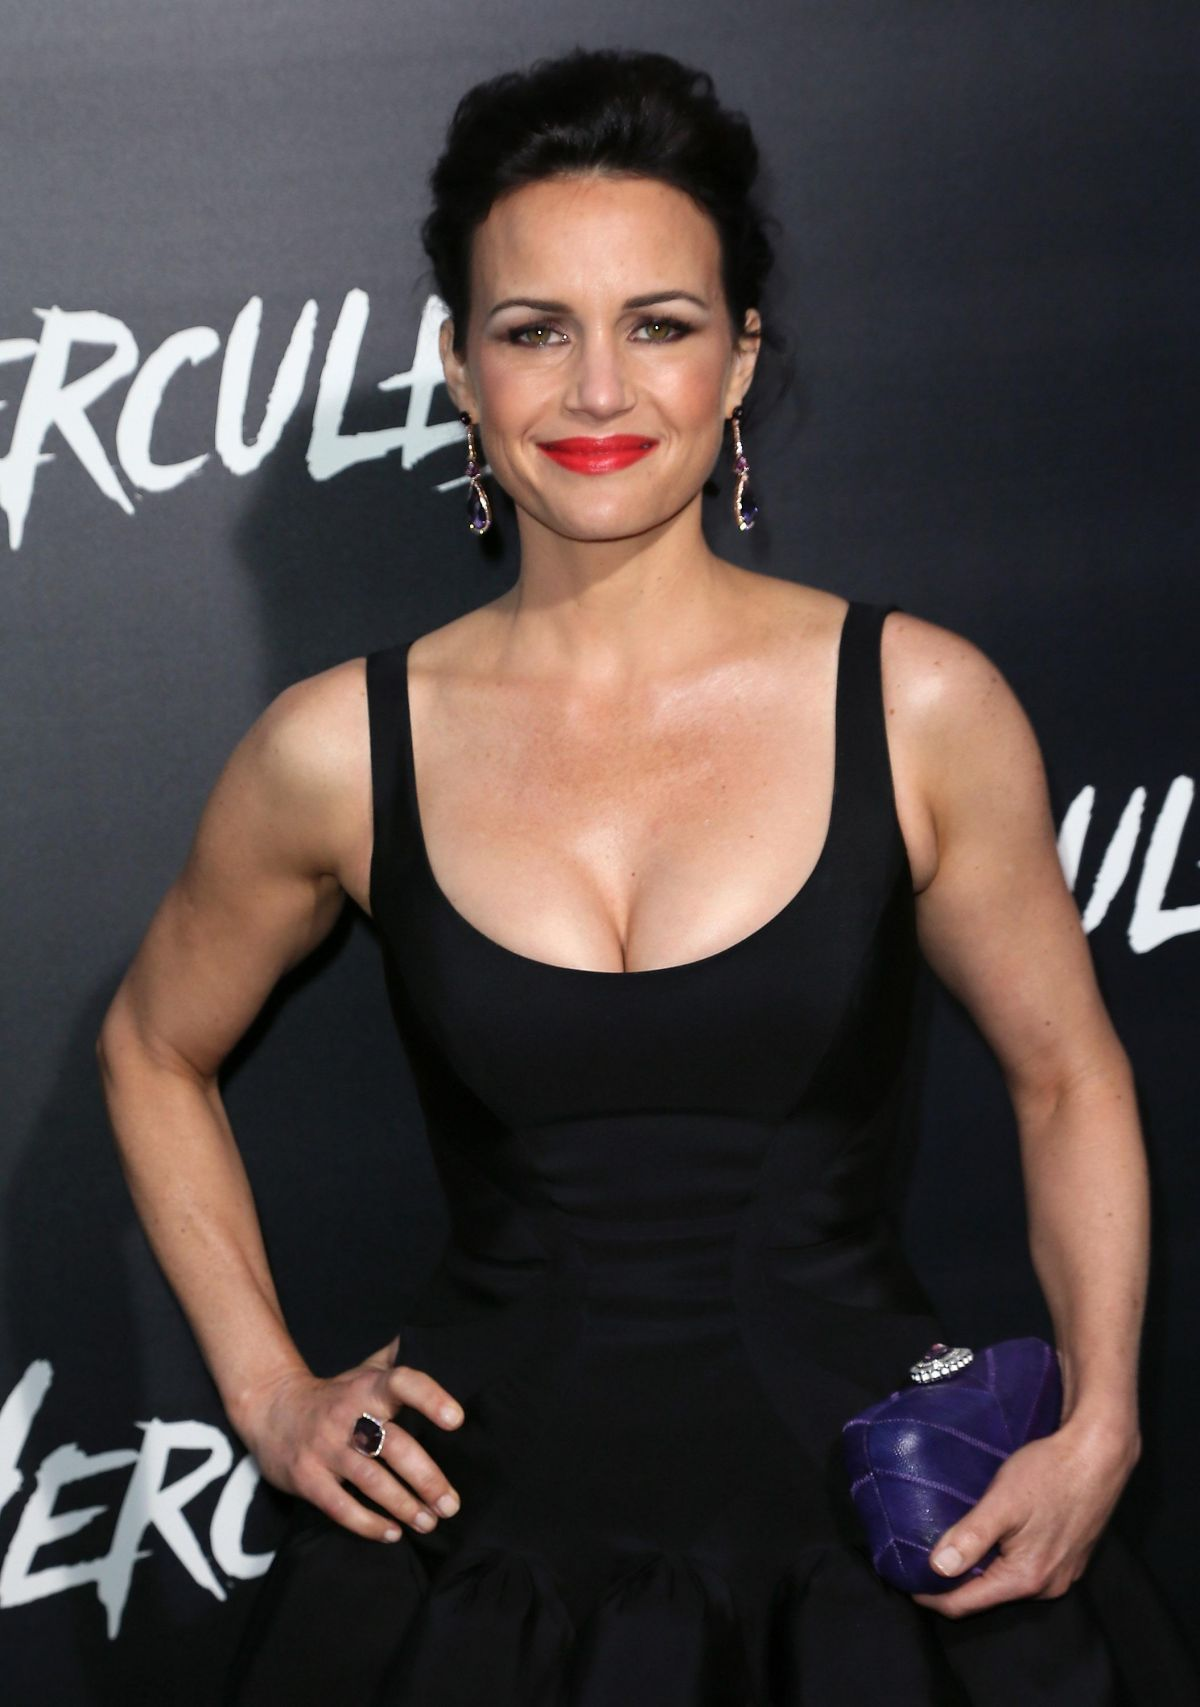 Carla Gugino Backgrounds, Compatible - PC, Mobile, Gadgets| 1200x1707 px